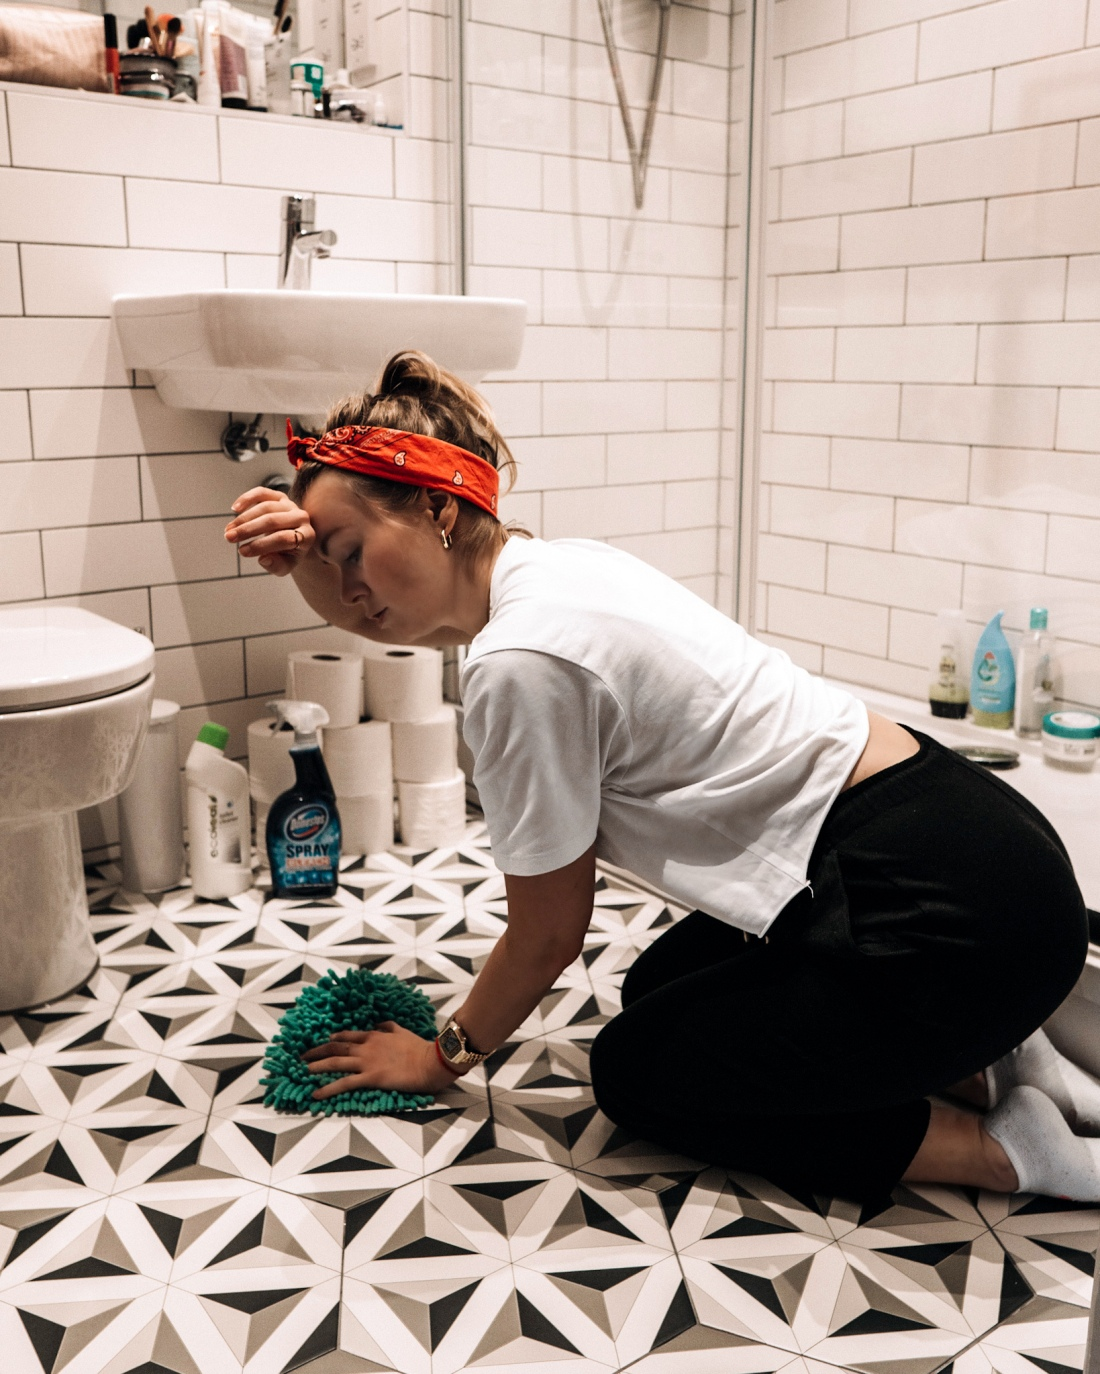 Clean a bathroom - things to do at home in 2020